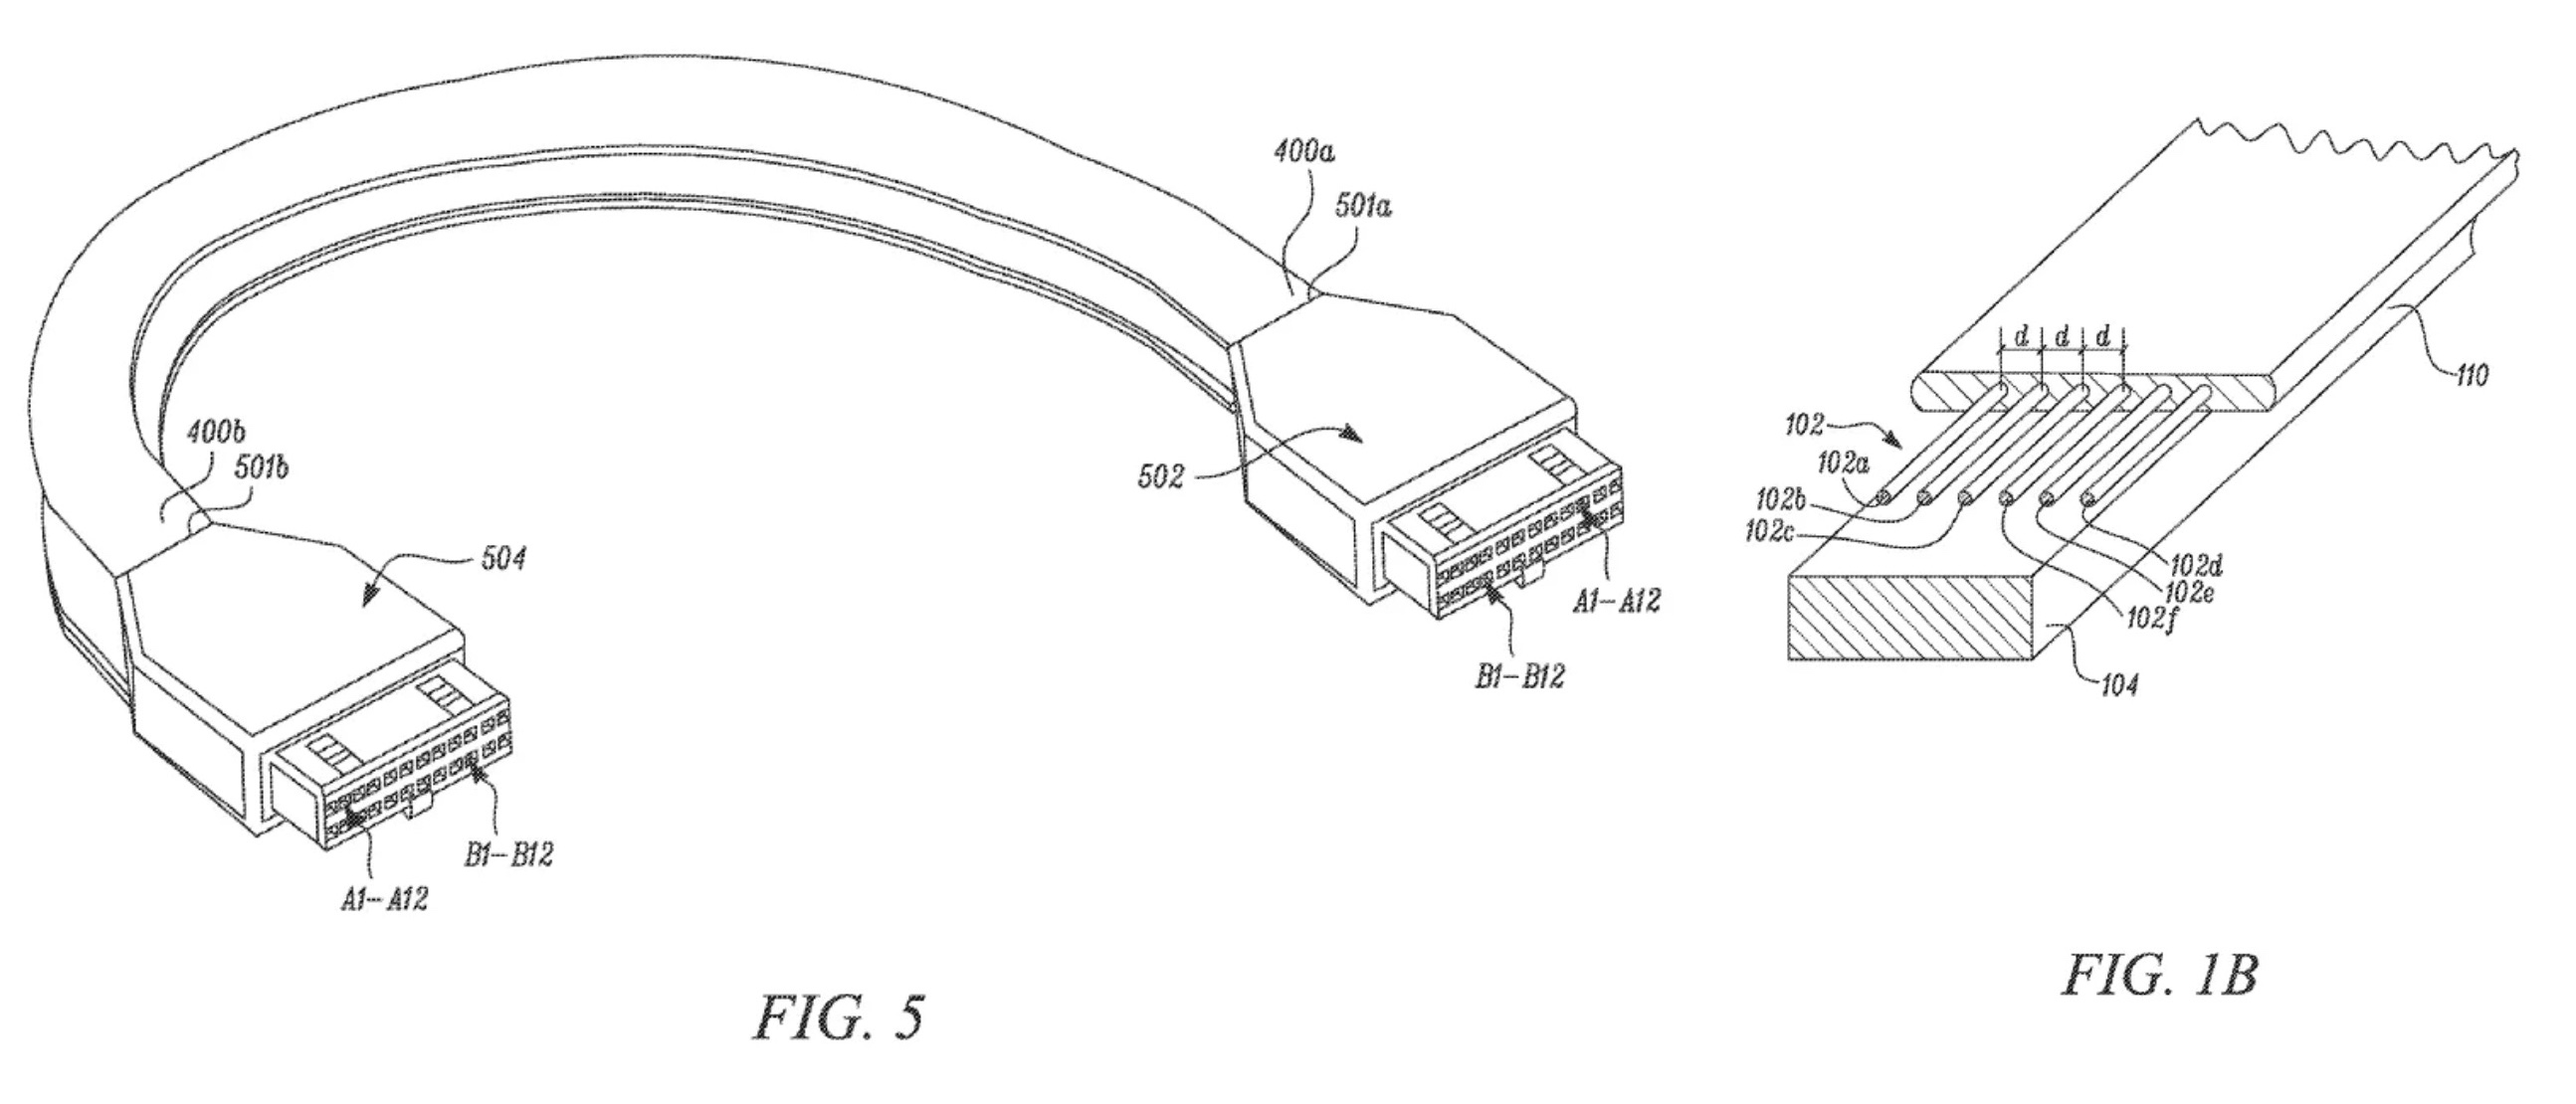 Tesla patents new type of cable easier to manipulate by robots in move to automate production